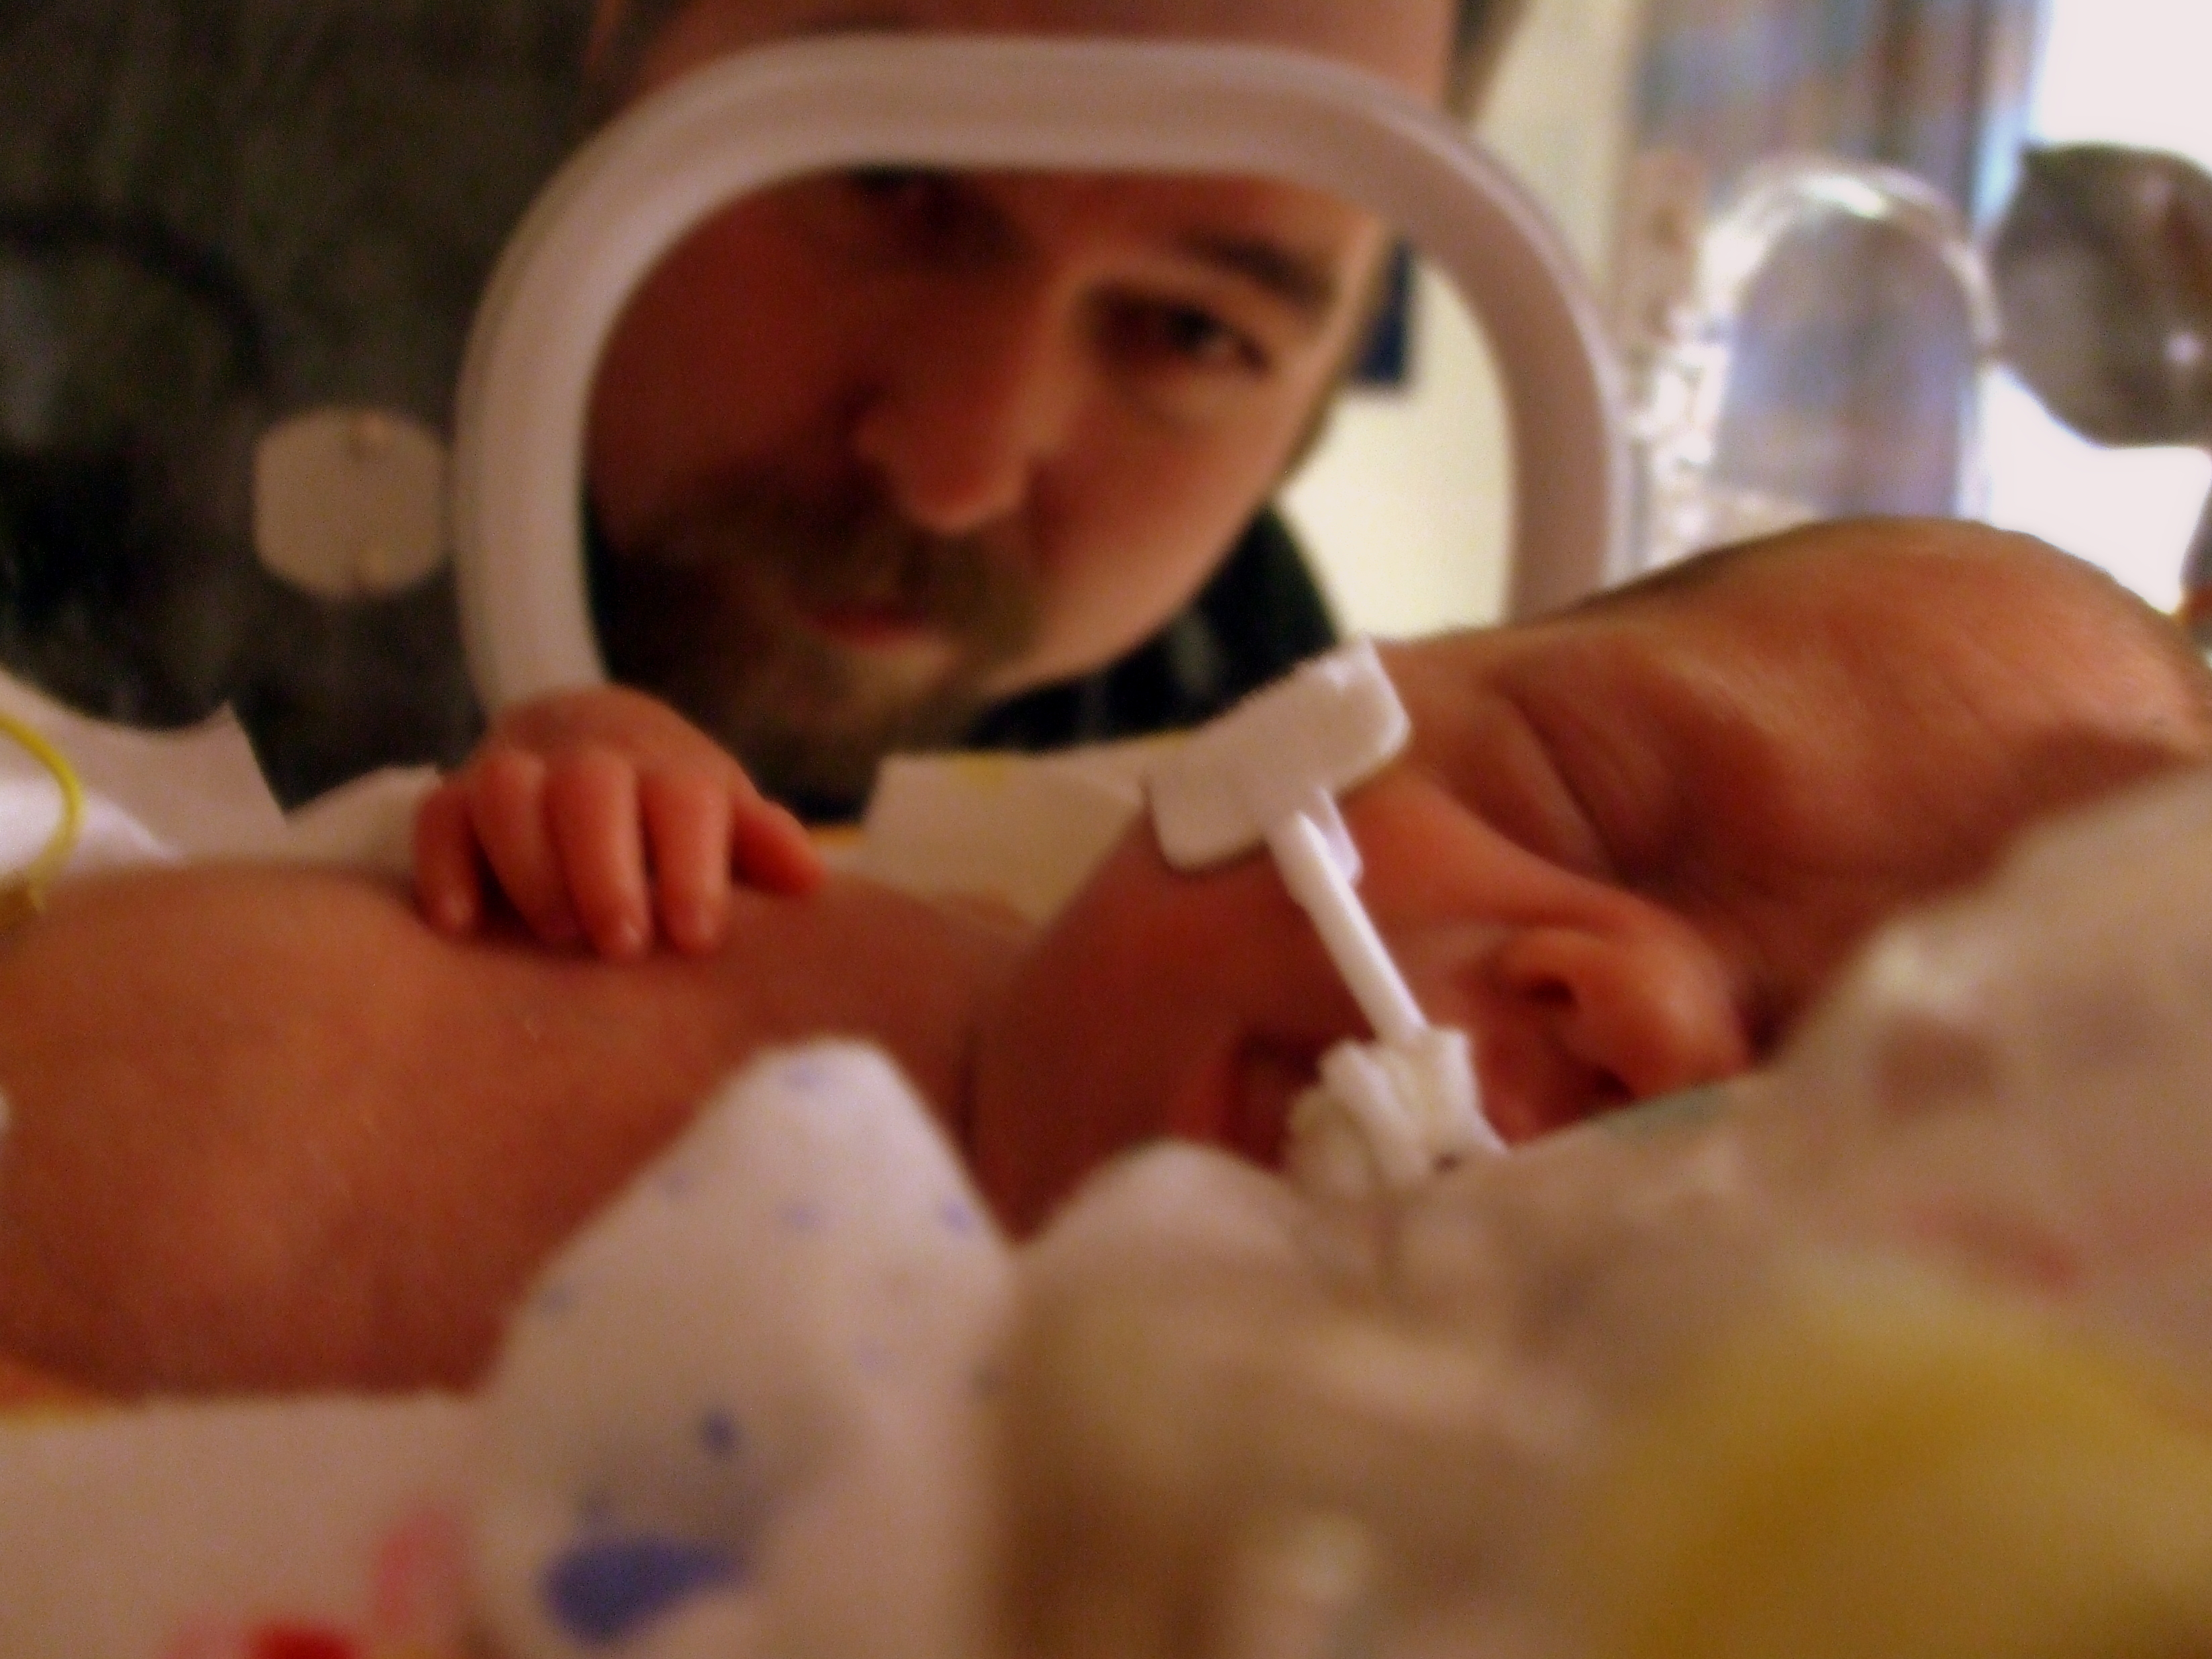 Photo: A father looks at his infant baby through an incubator in the NICU